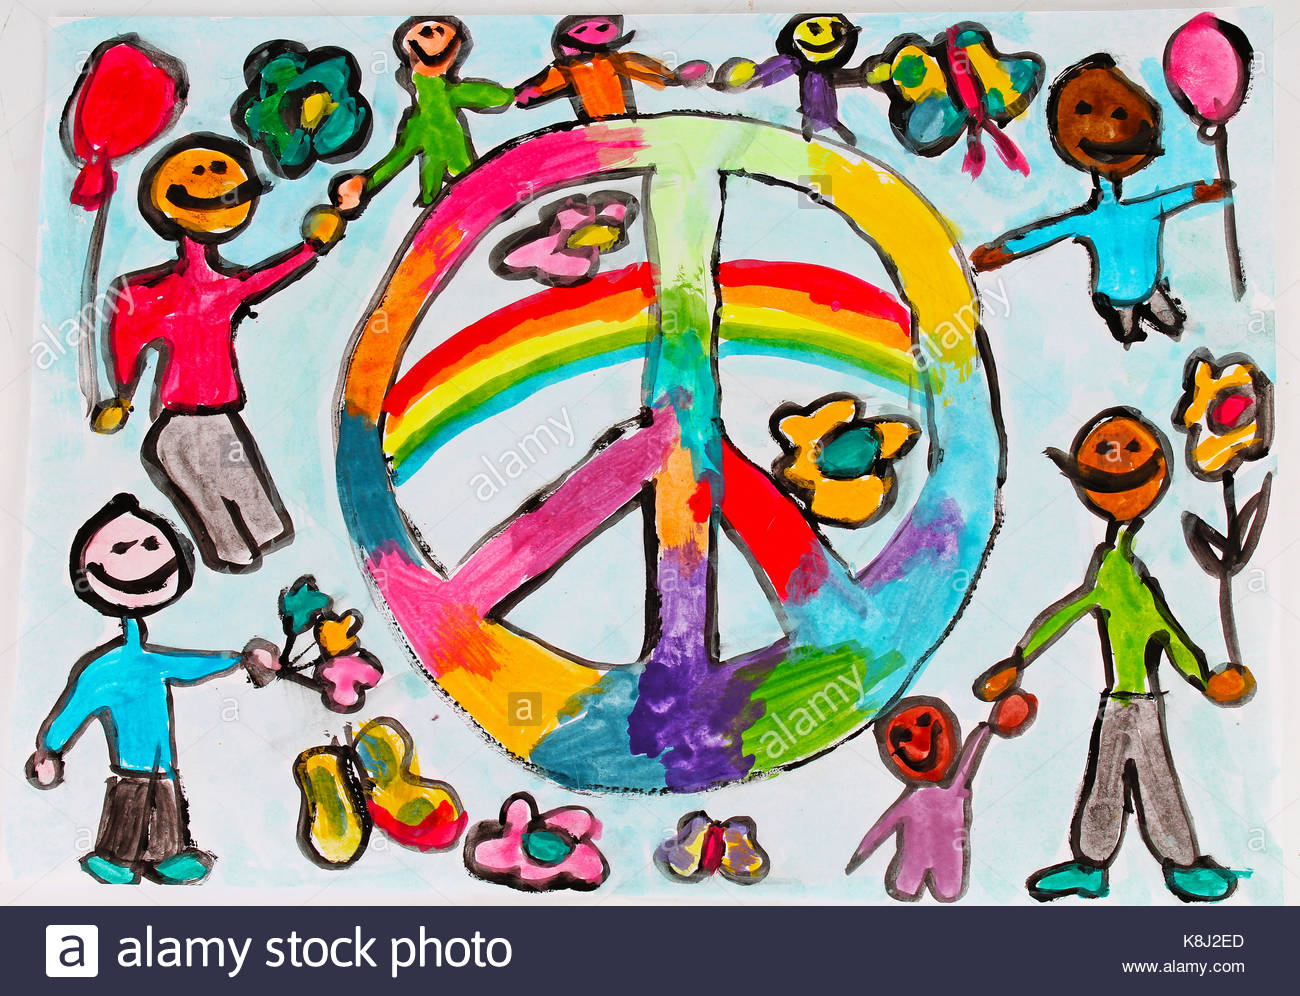 1300x996 World Peace Child Draw. Children Drawings Kid's Draws Collection